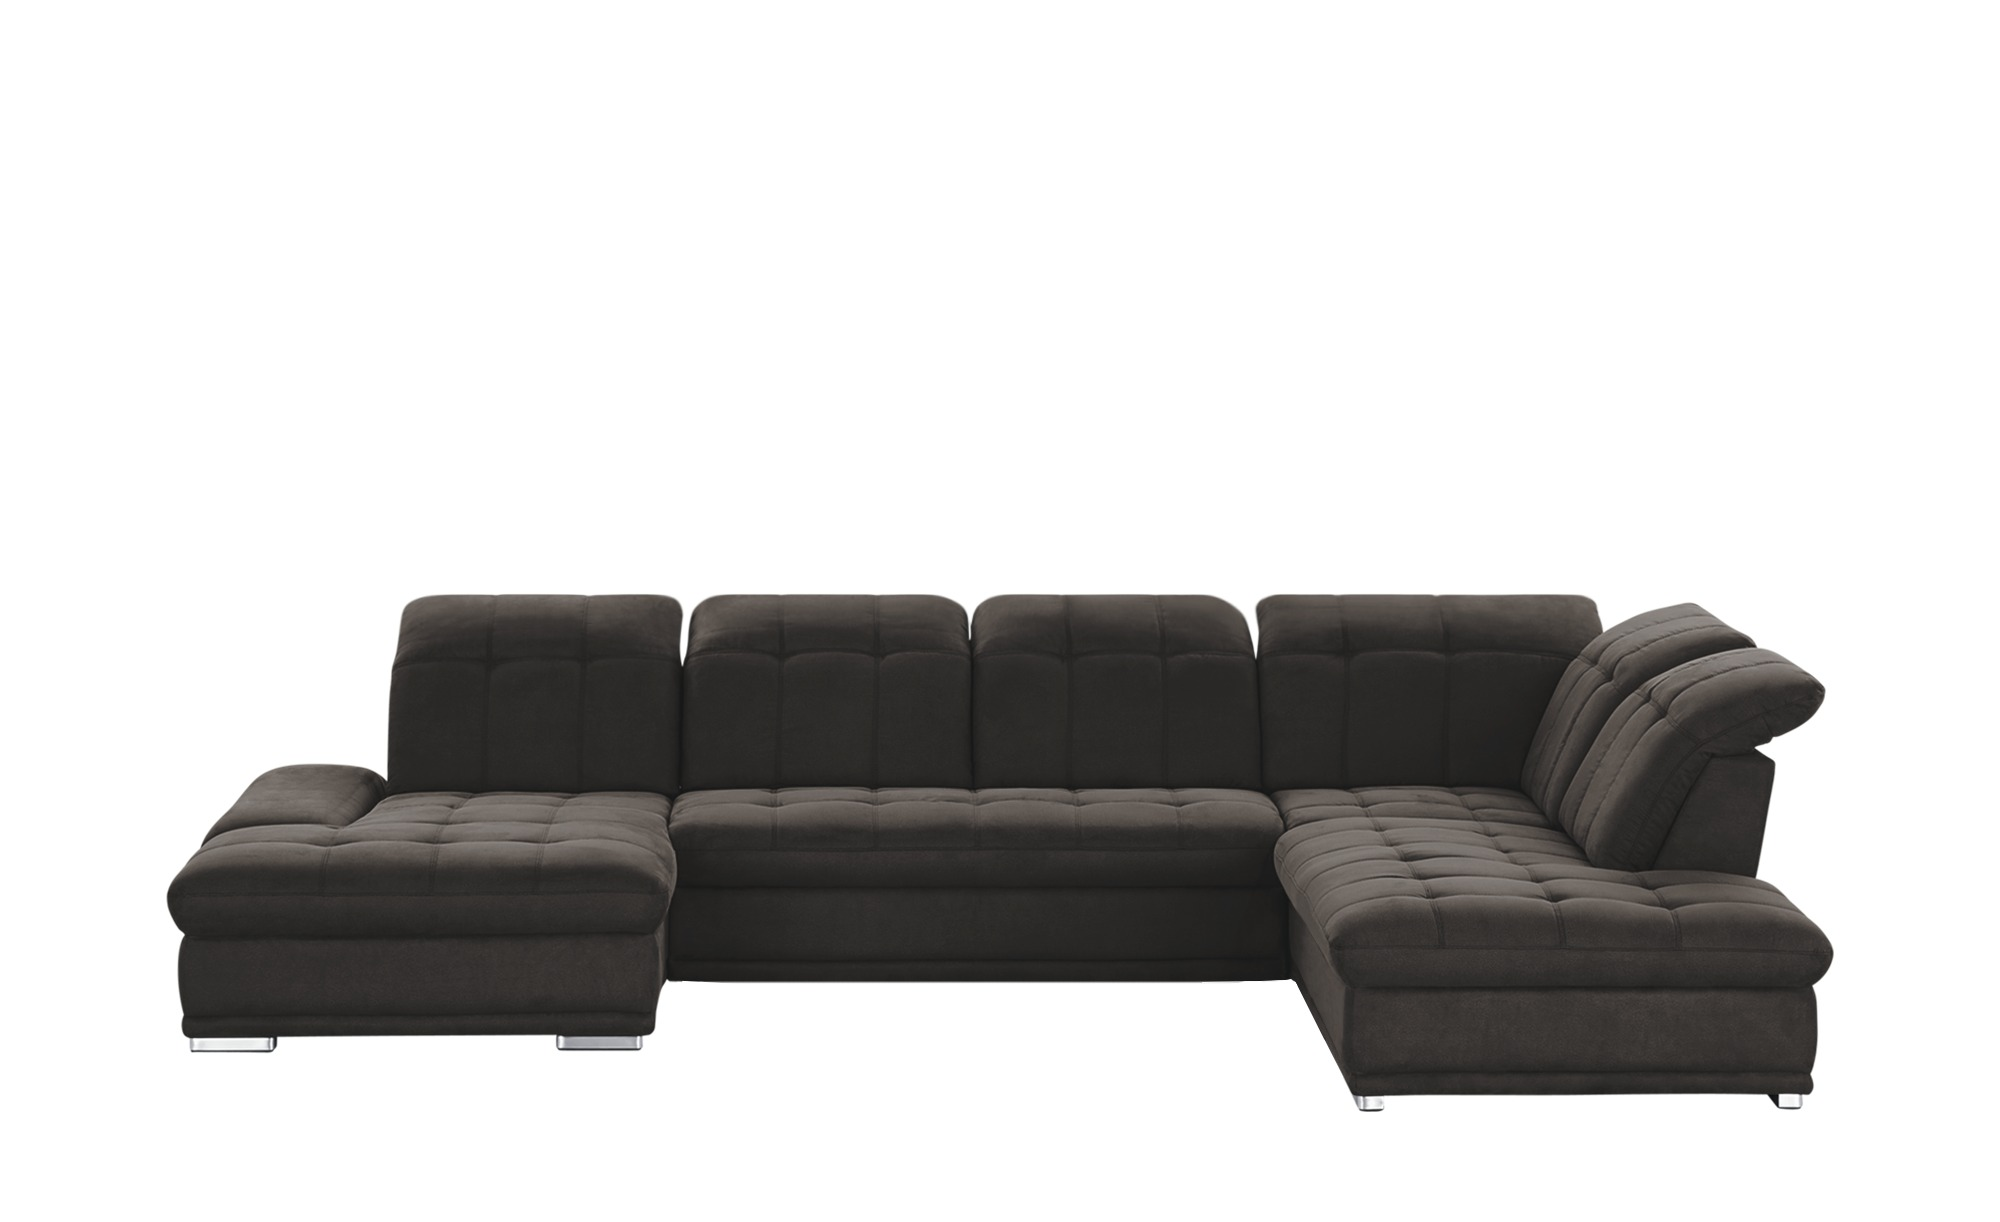 Pin By Ladendirekt On Sofas Couches Pinterest Sofa And Sofas